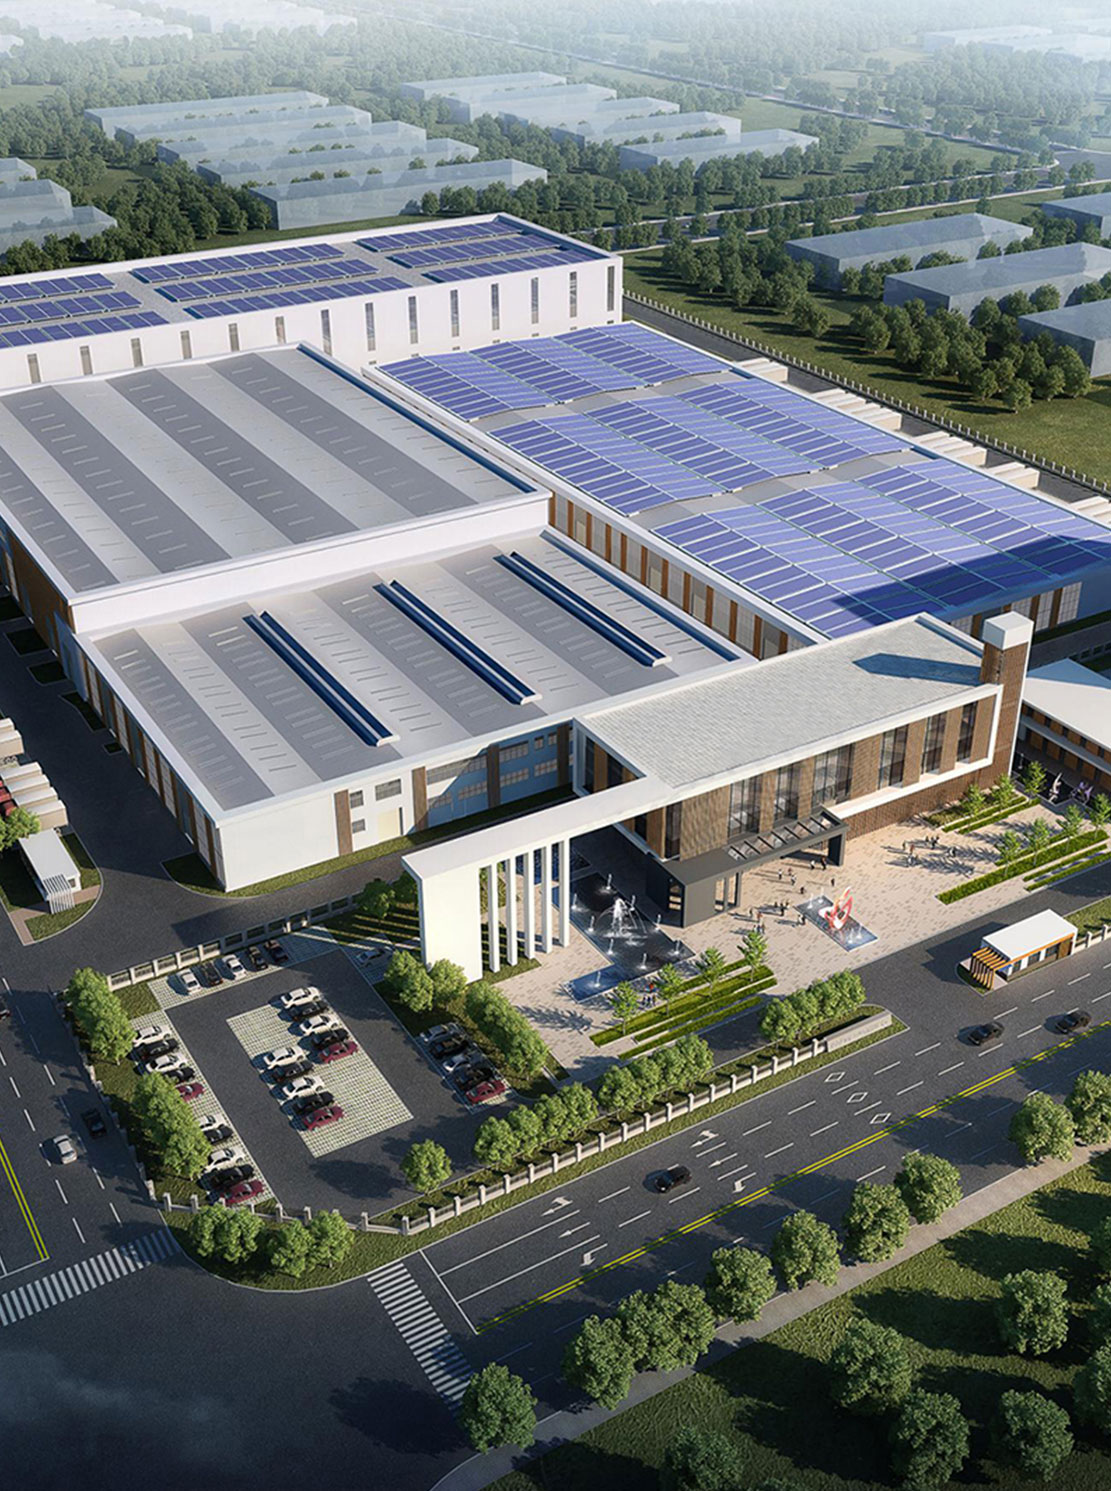 In 2018, the project of the center of intelligent manufacturing of knifes and scissors of Zhang Xiaoquan in Yangjiang was settled in Yinling Science and Technology Industrial Park in Jiangcheng District, Yangjiang.